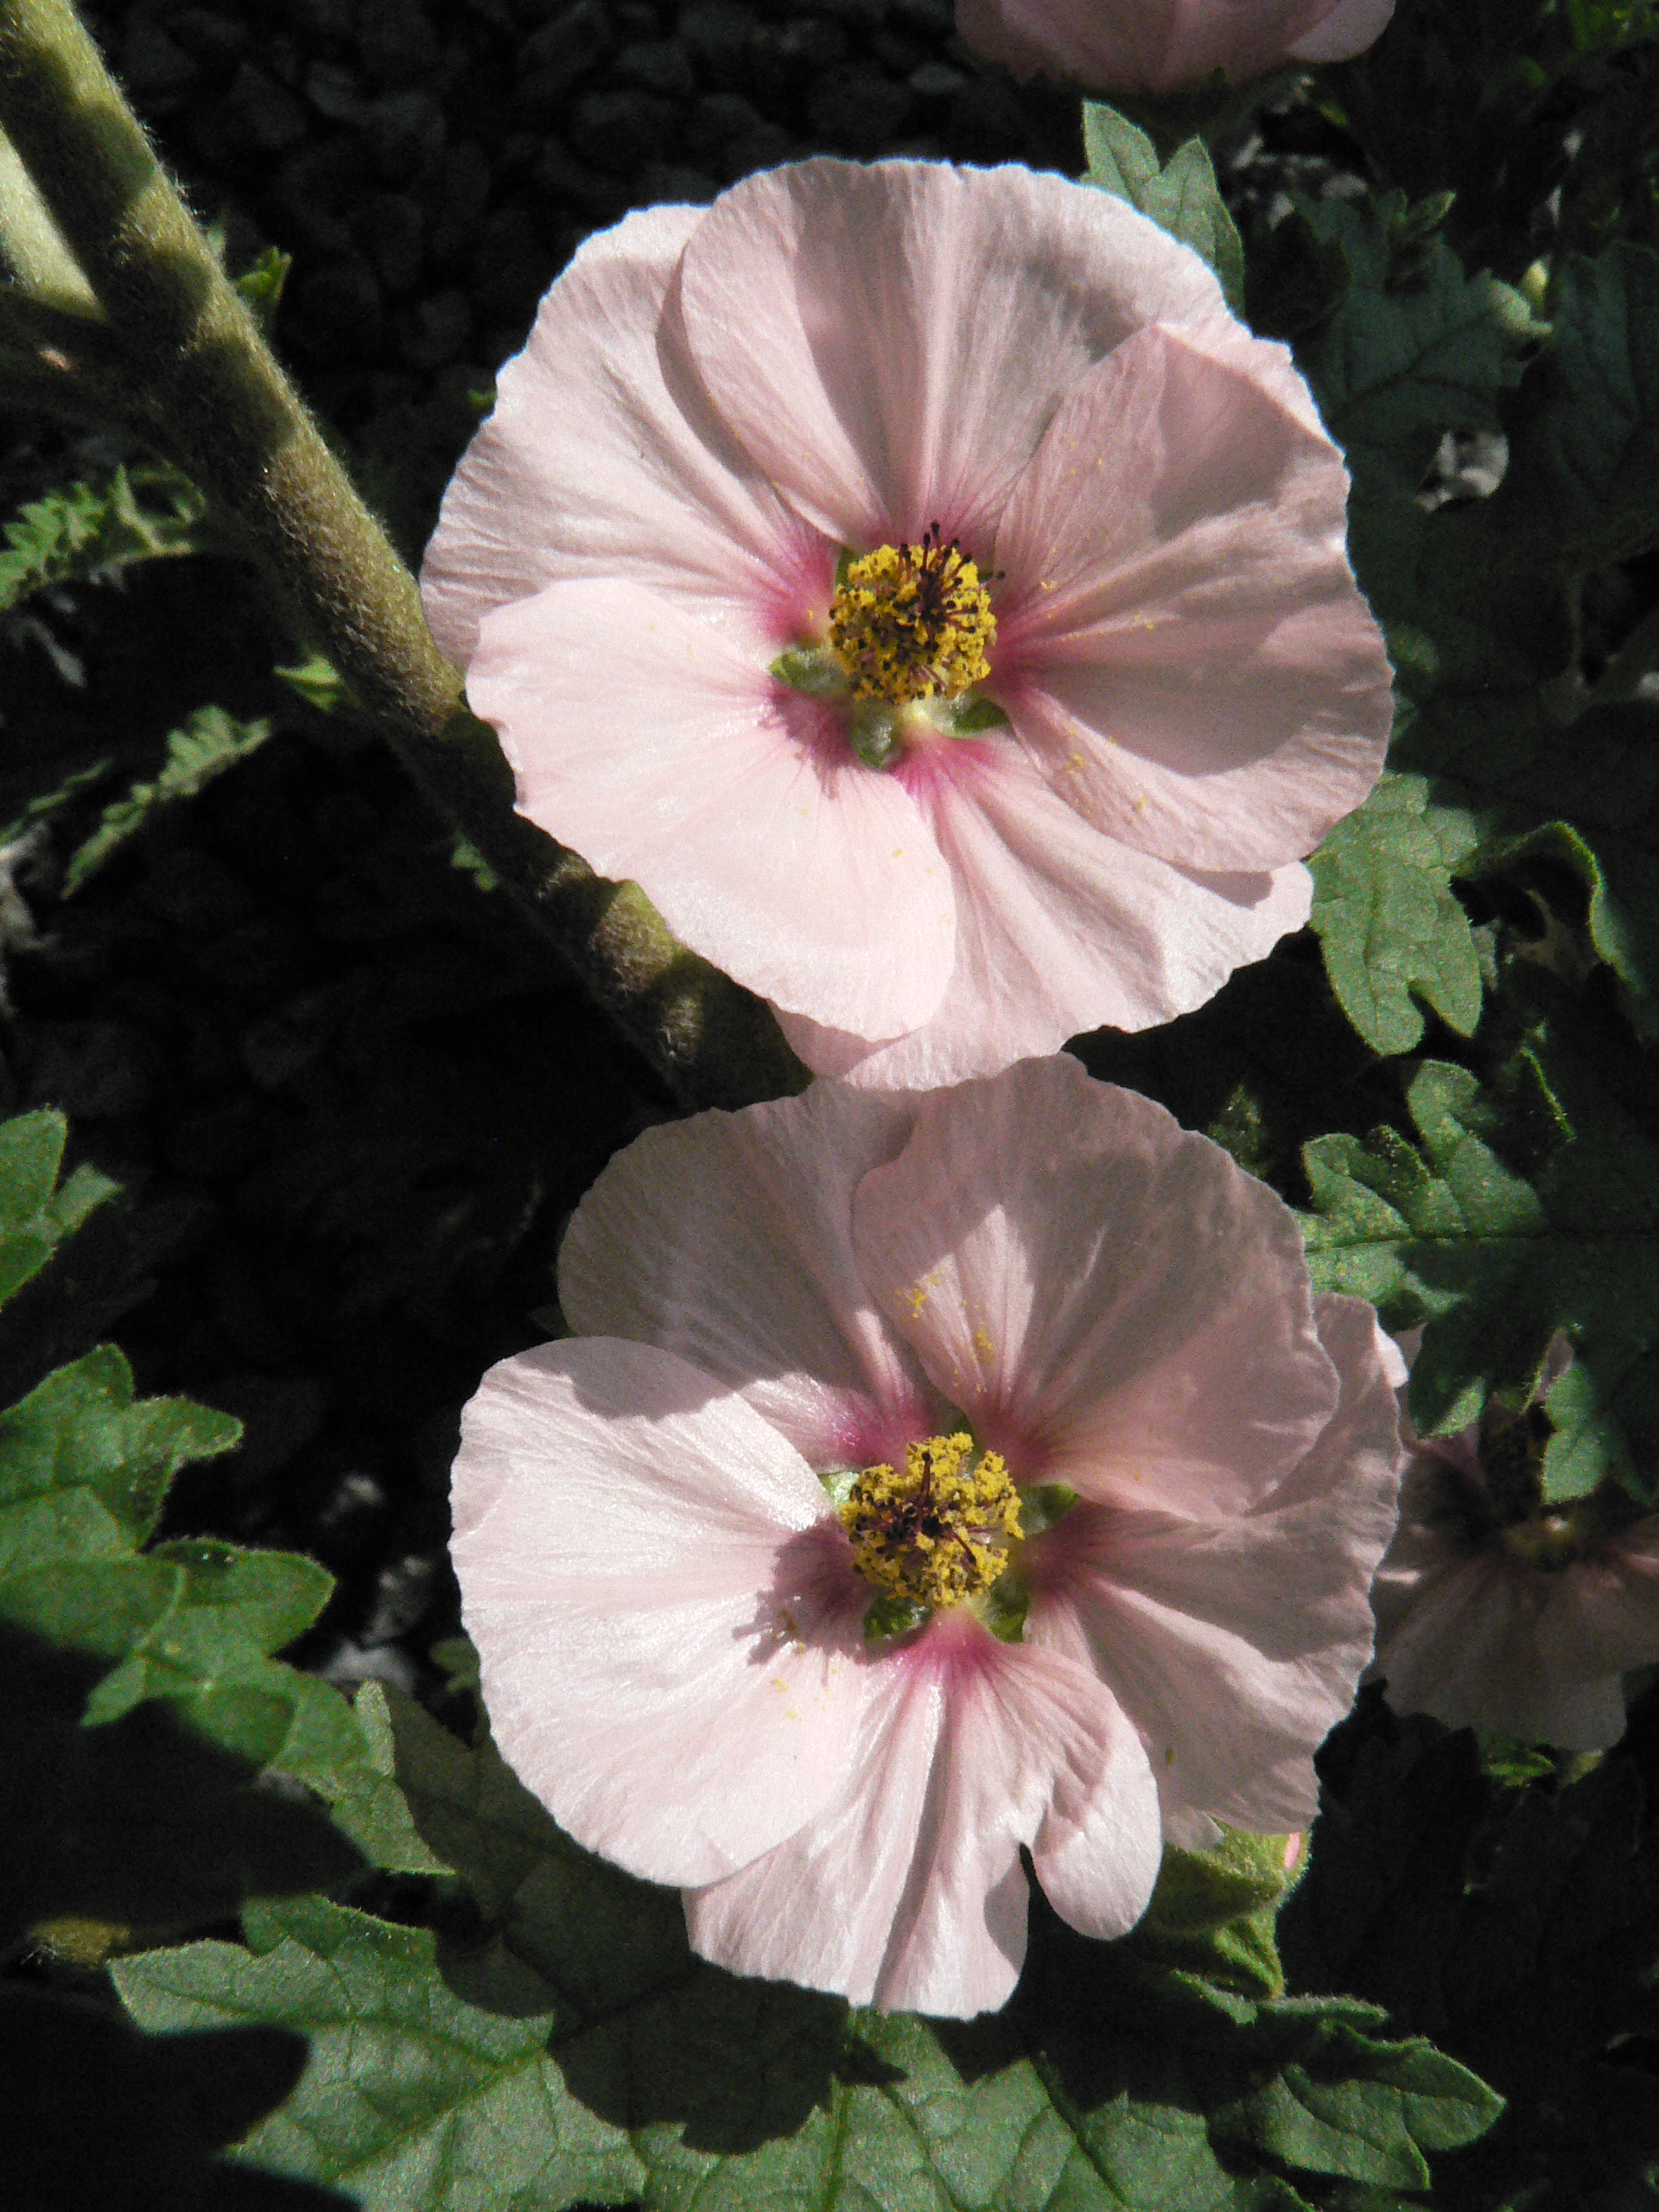 Pink hibiscus-type flowers are quite lovely.